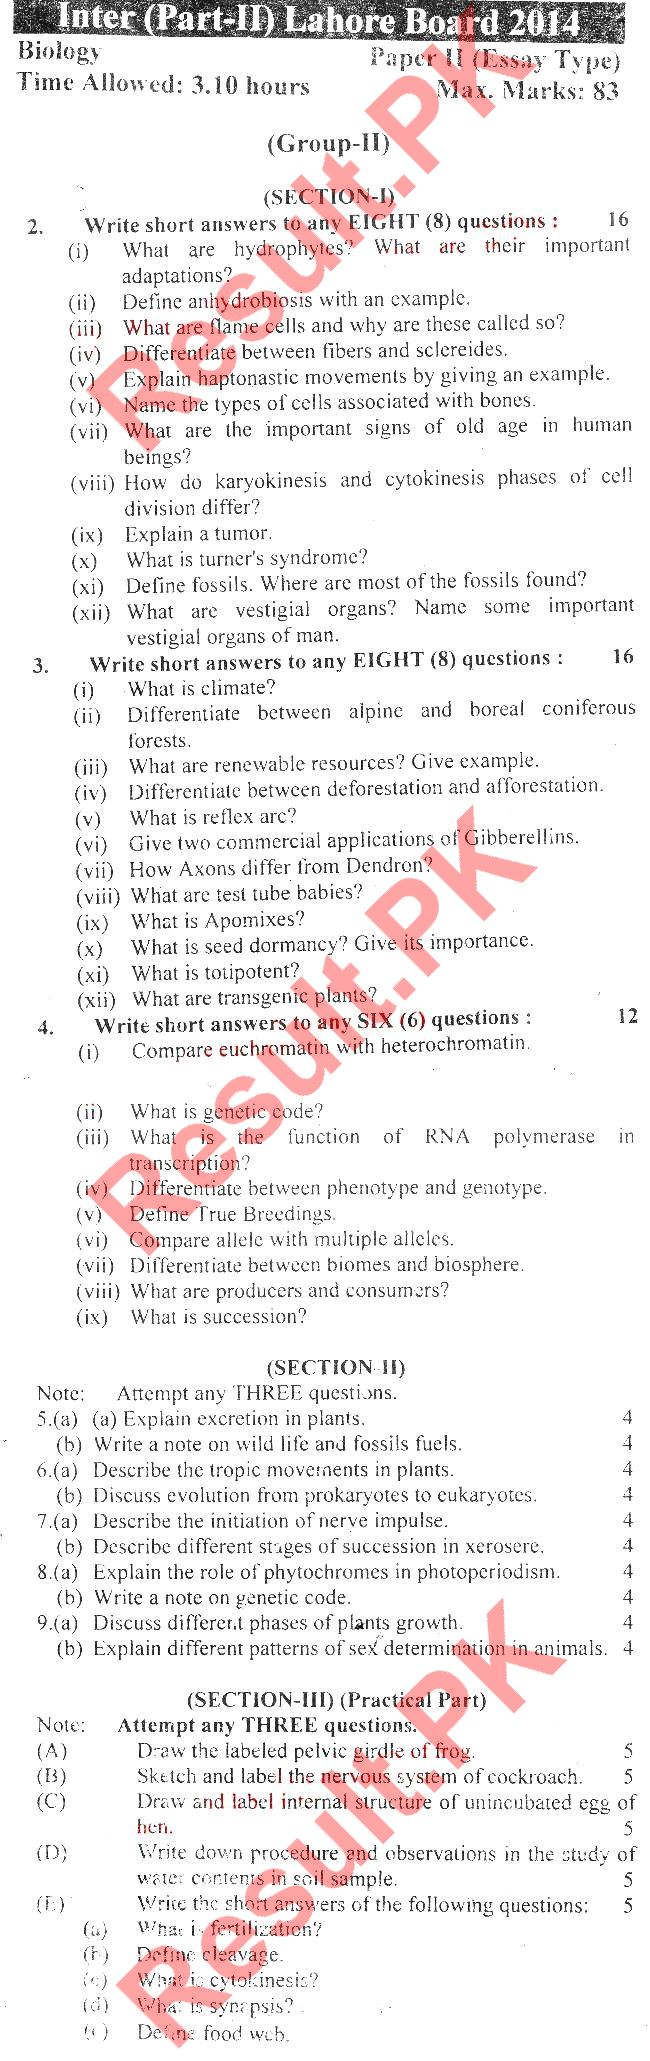 biology essay type questions